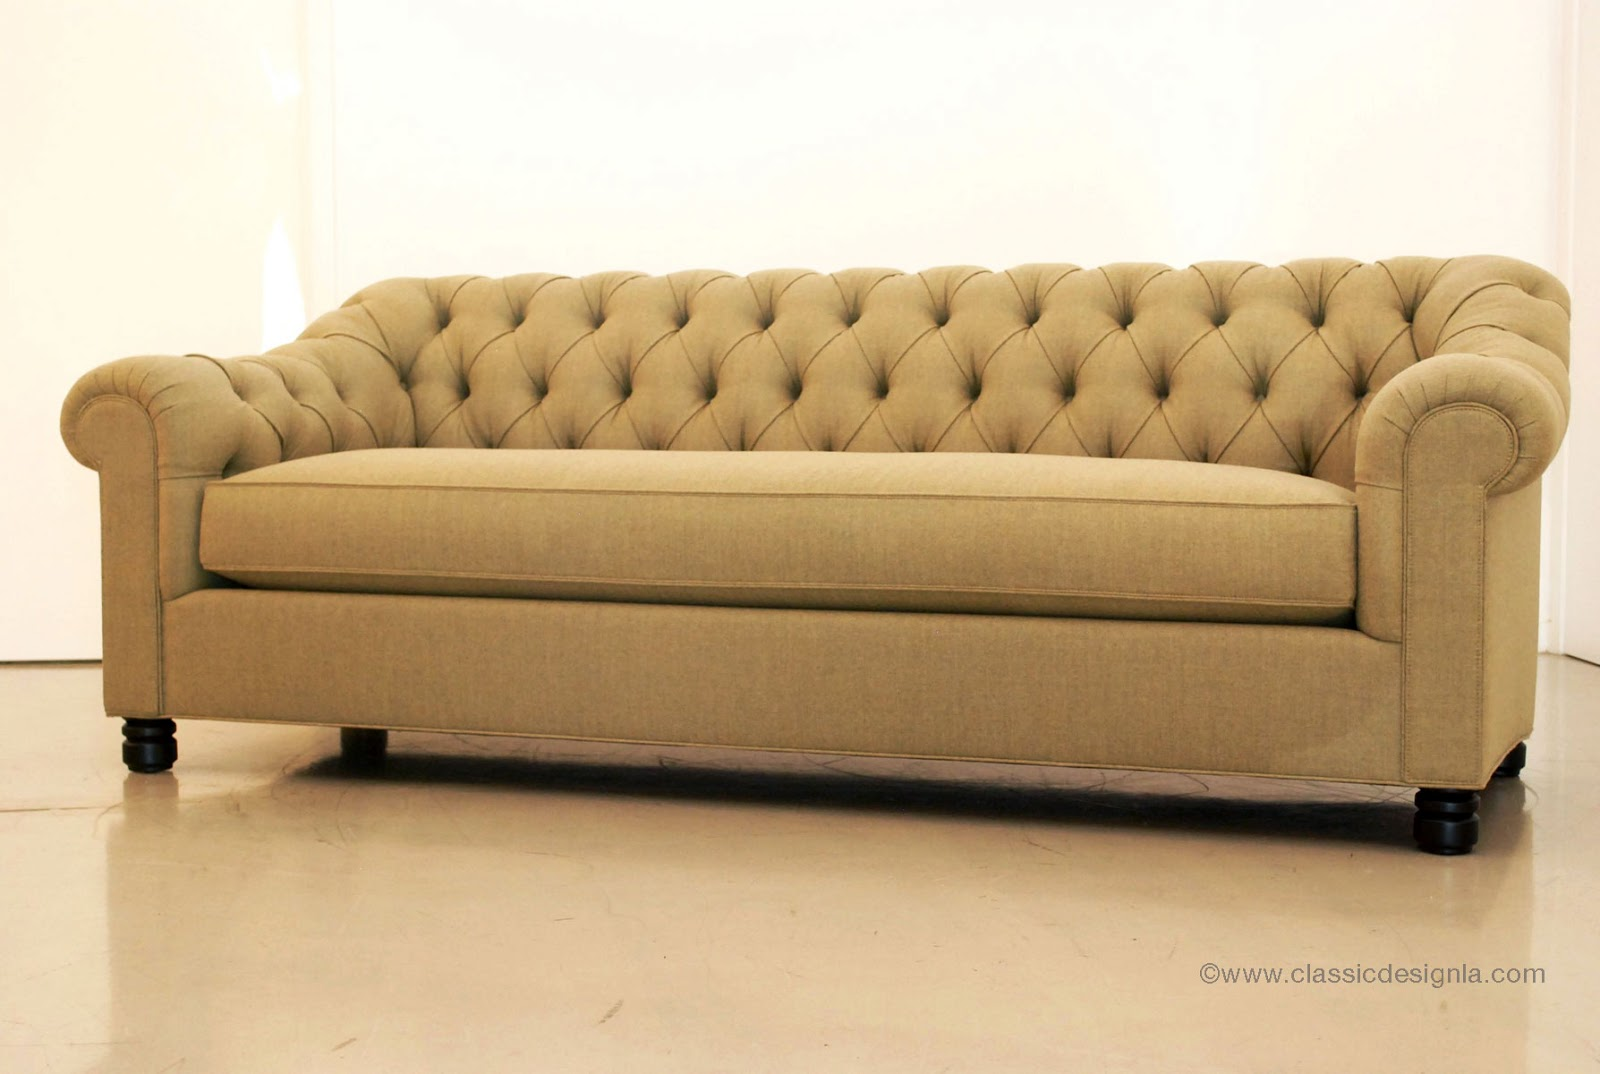 Classic design custom chesterfield sofas Unique loveseats